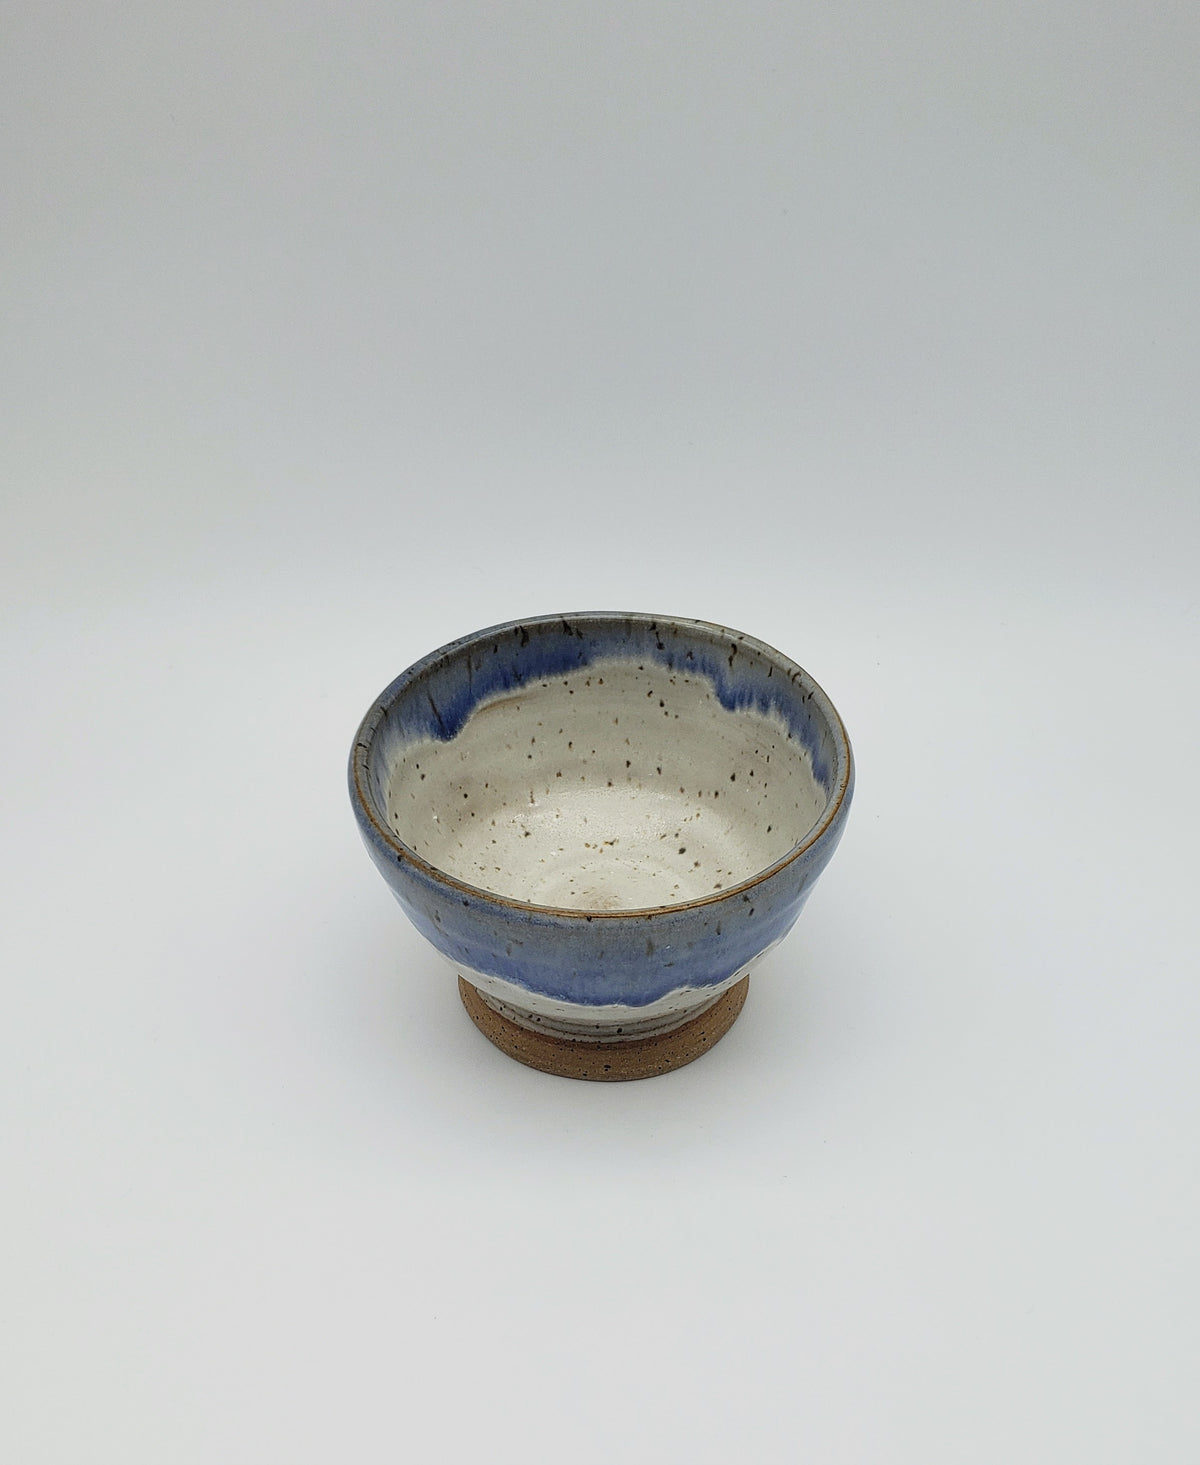 Handmade Ceramic Little Ingredient Prep Bowl - 4 oz and 6 oz